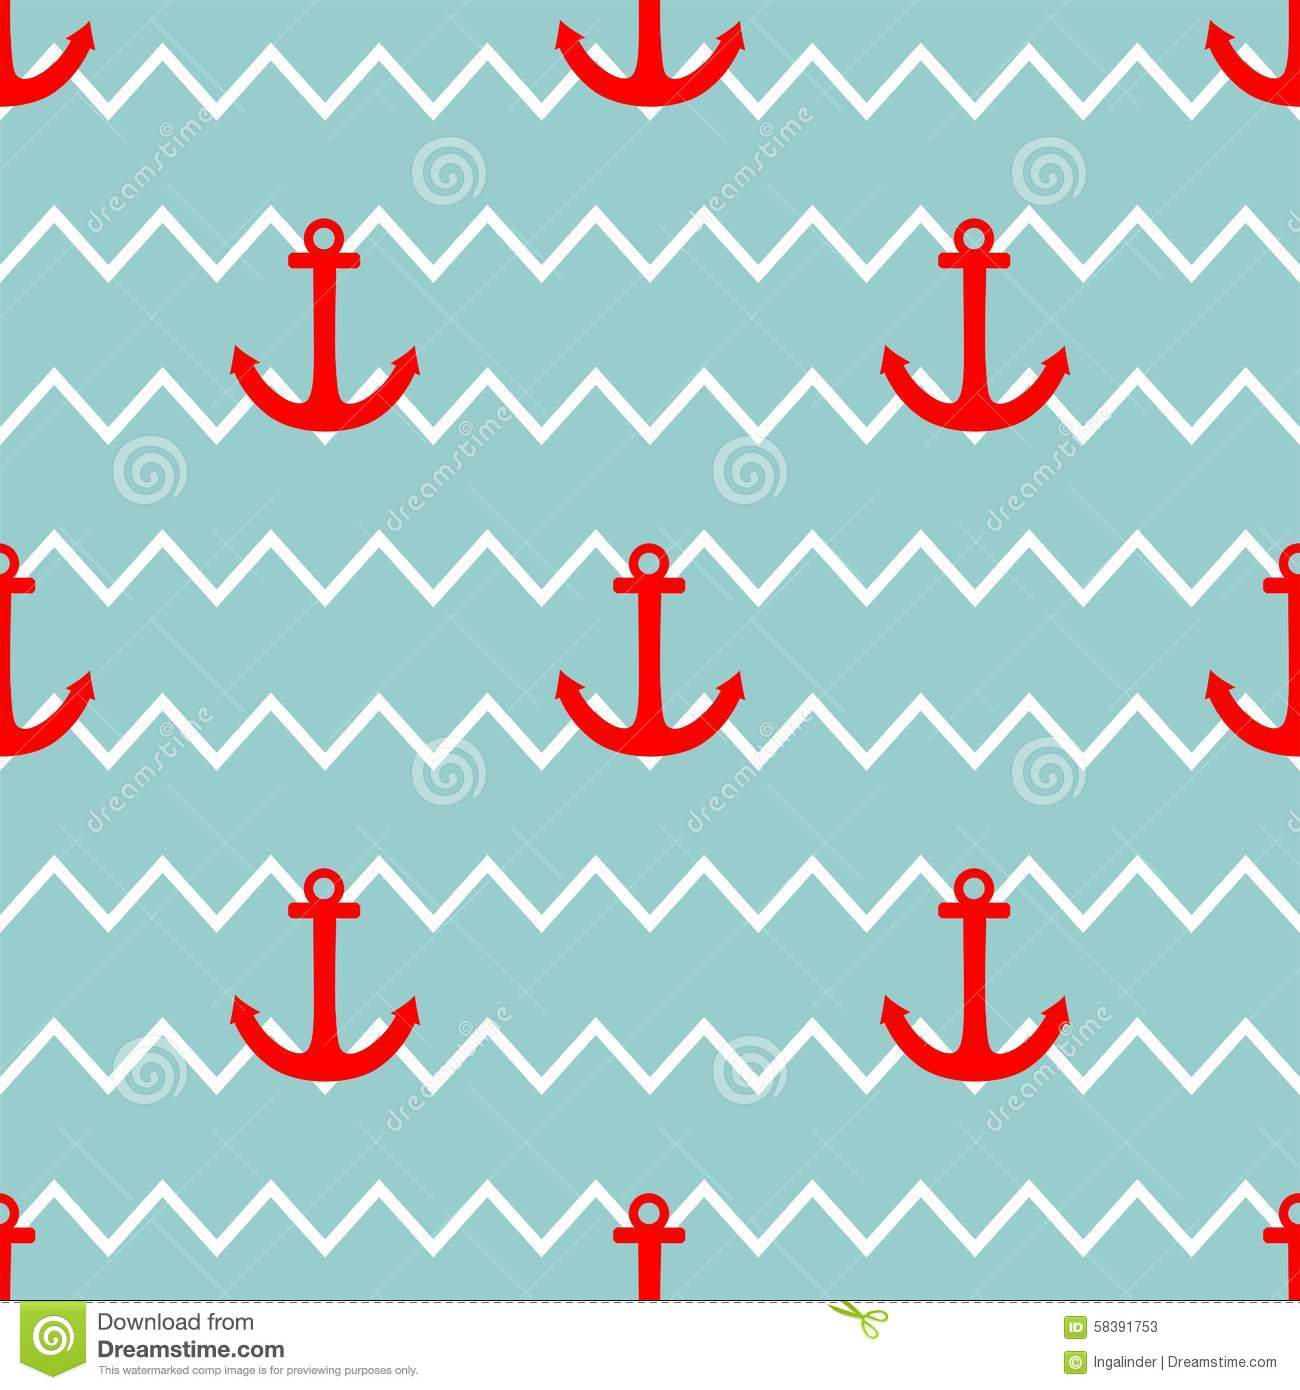 Tile Sailor Vector Pattern With Red Anchor On White And